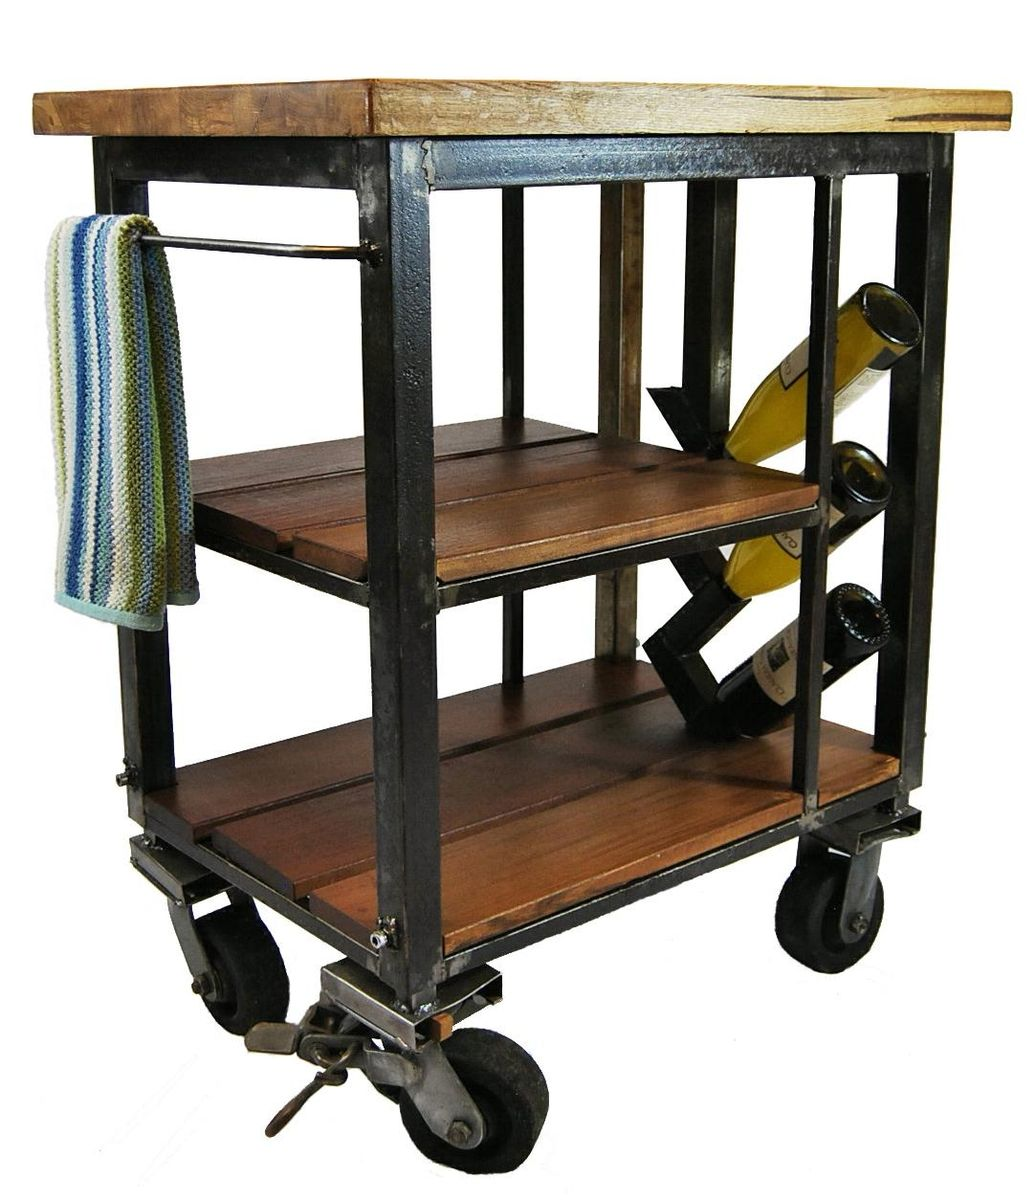 Butcher Block Kitchen Carts Wheels : Napa kitchen cart made from reclaimed butcher block and steel. Built with wheels and a wine rack ...